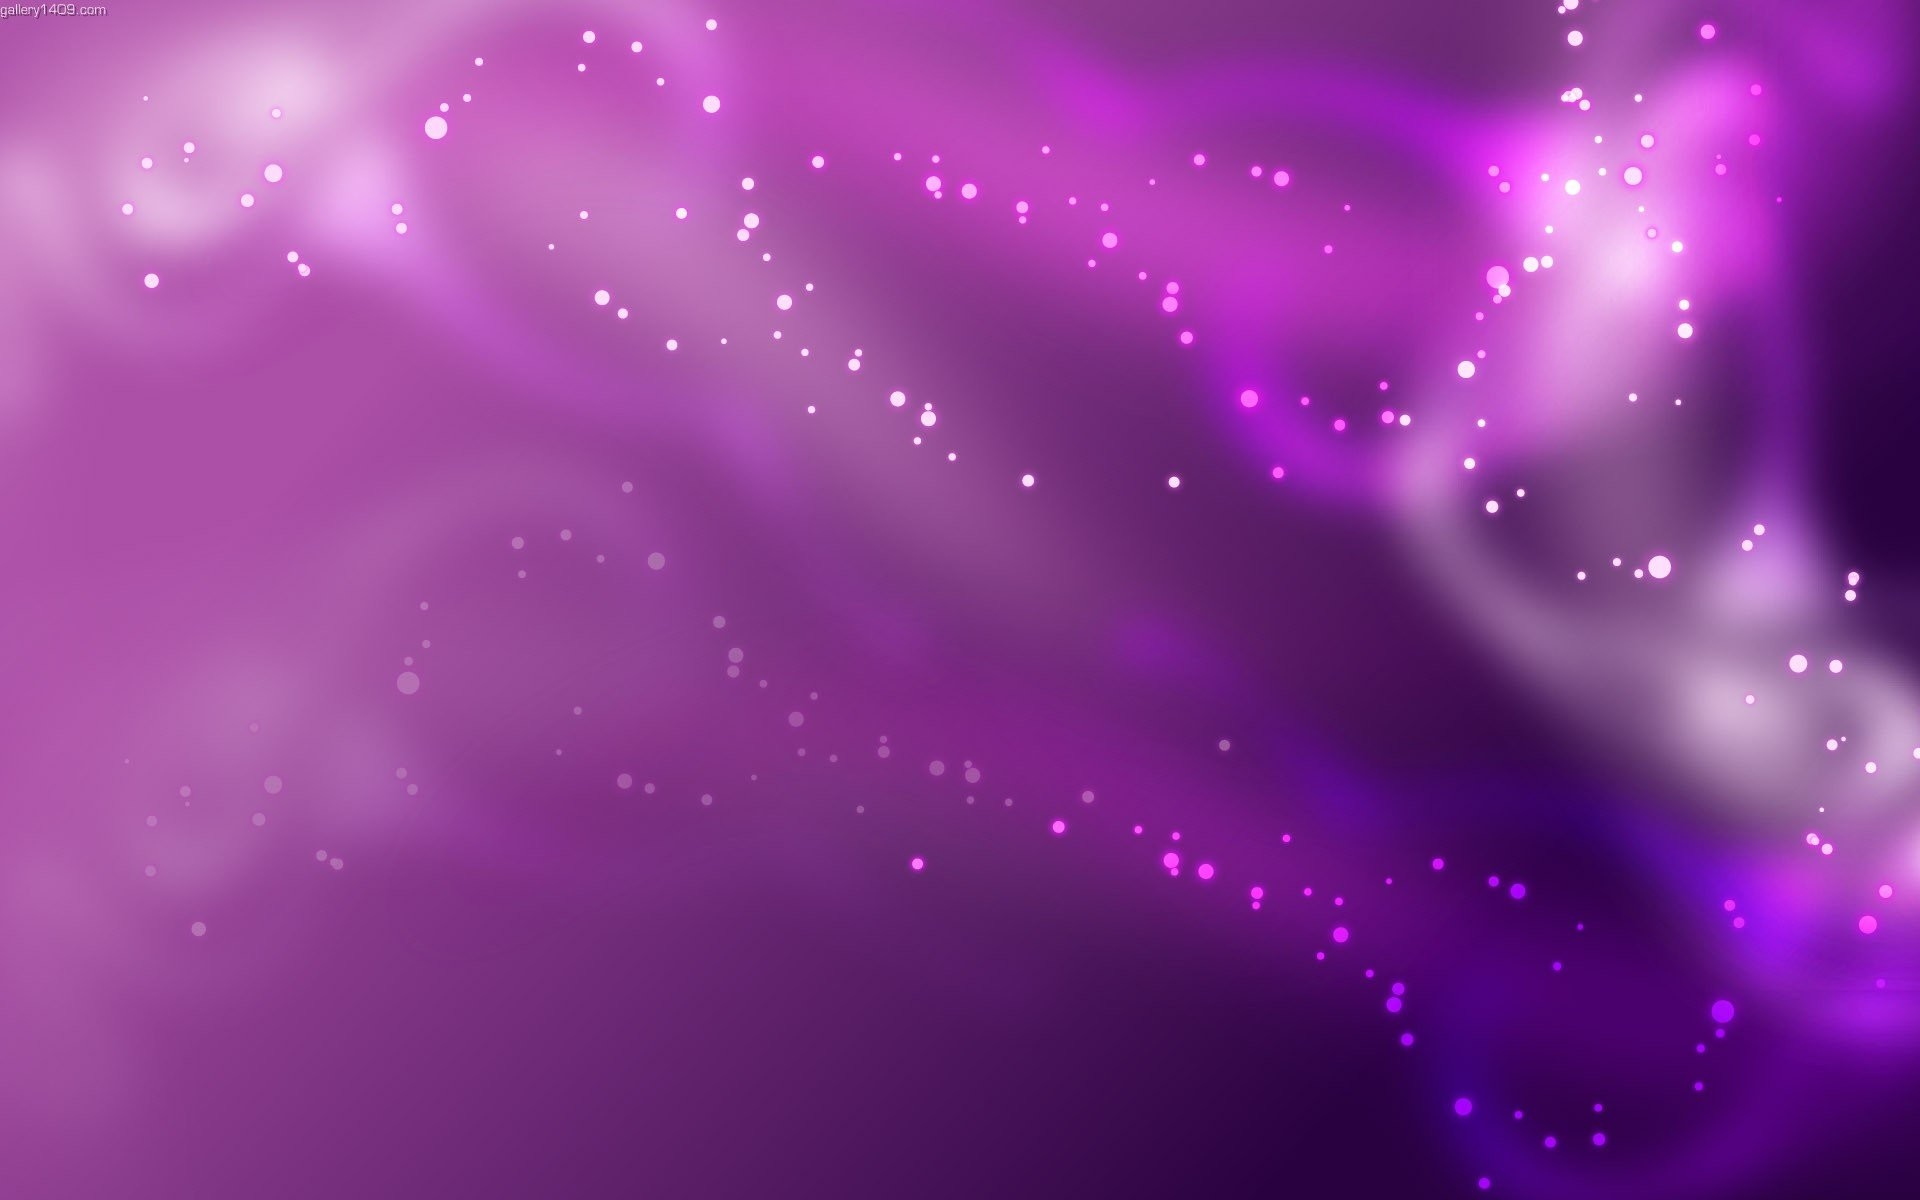 girly-laptop-wallpapers-picture-colour-particles-backgrounds.jpg (